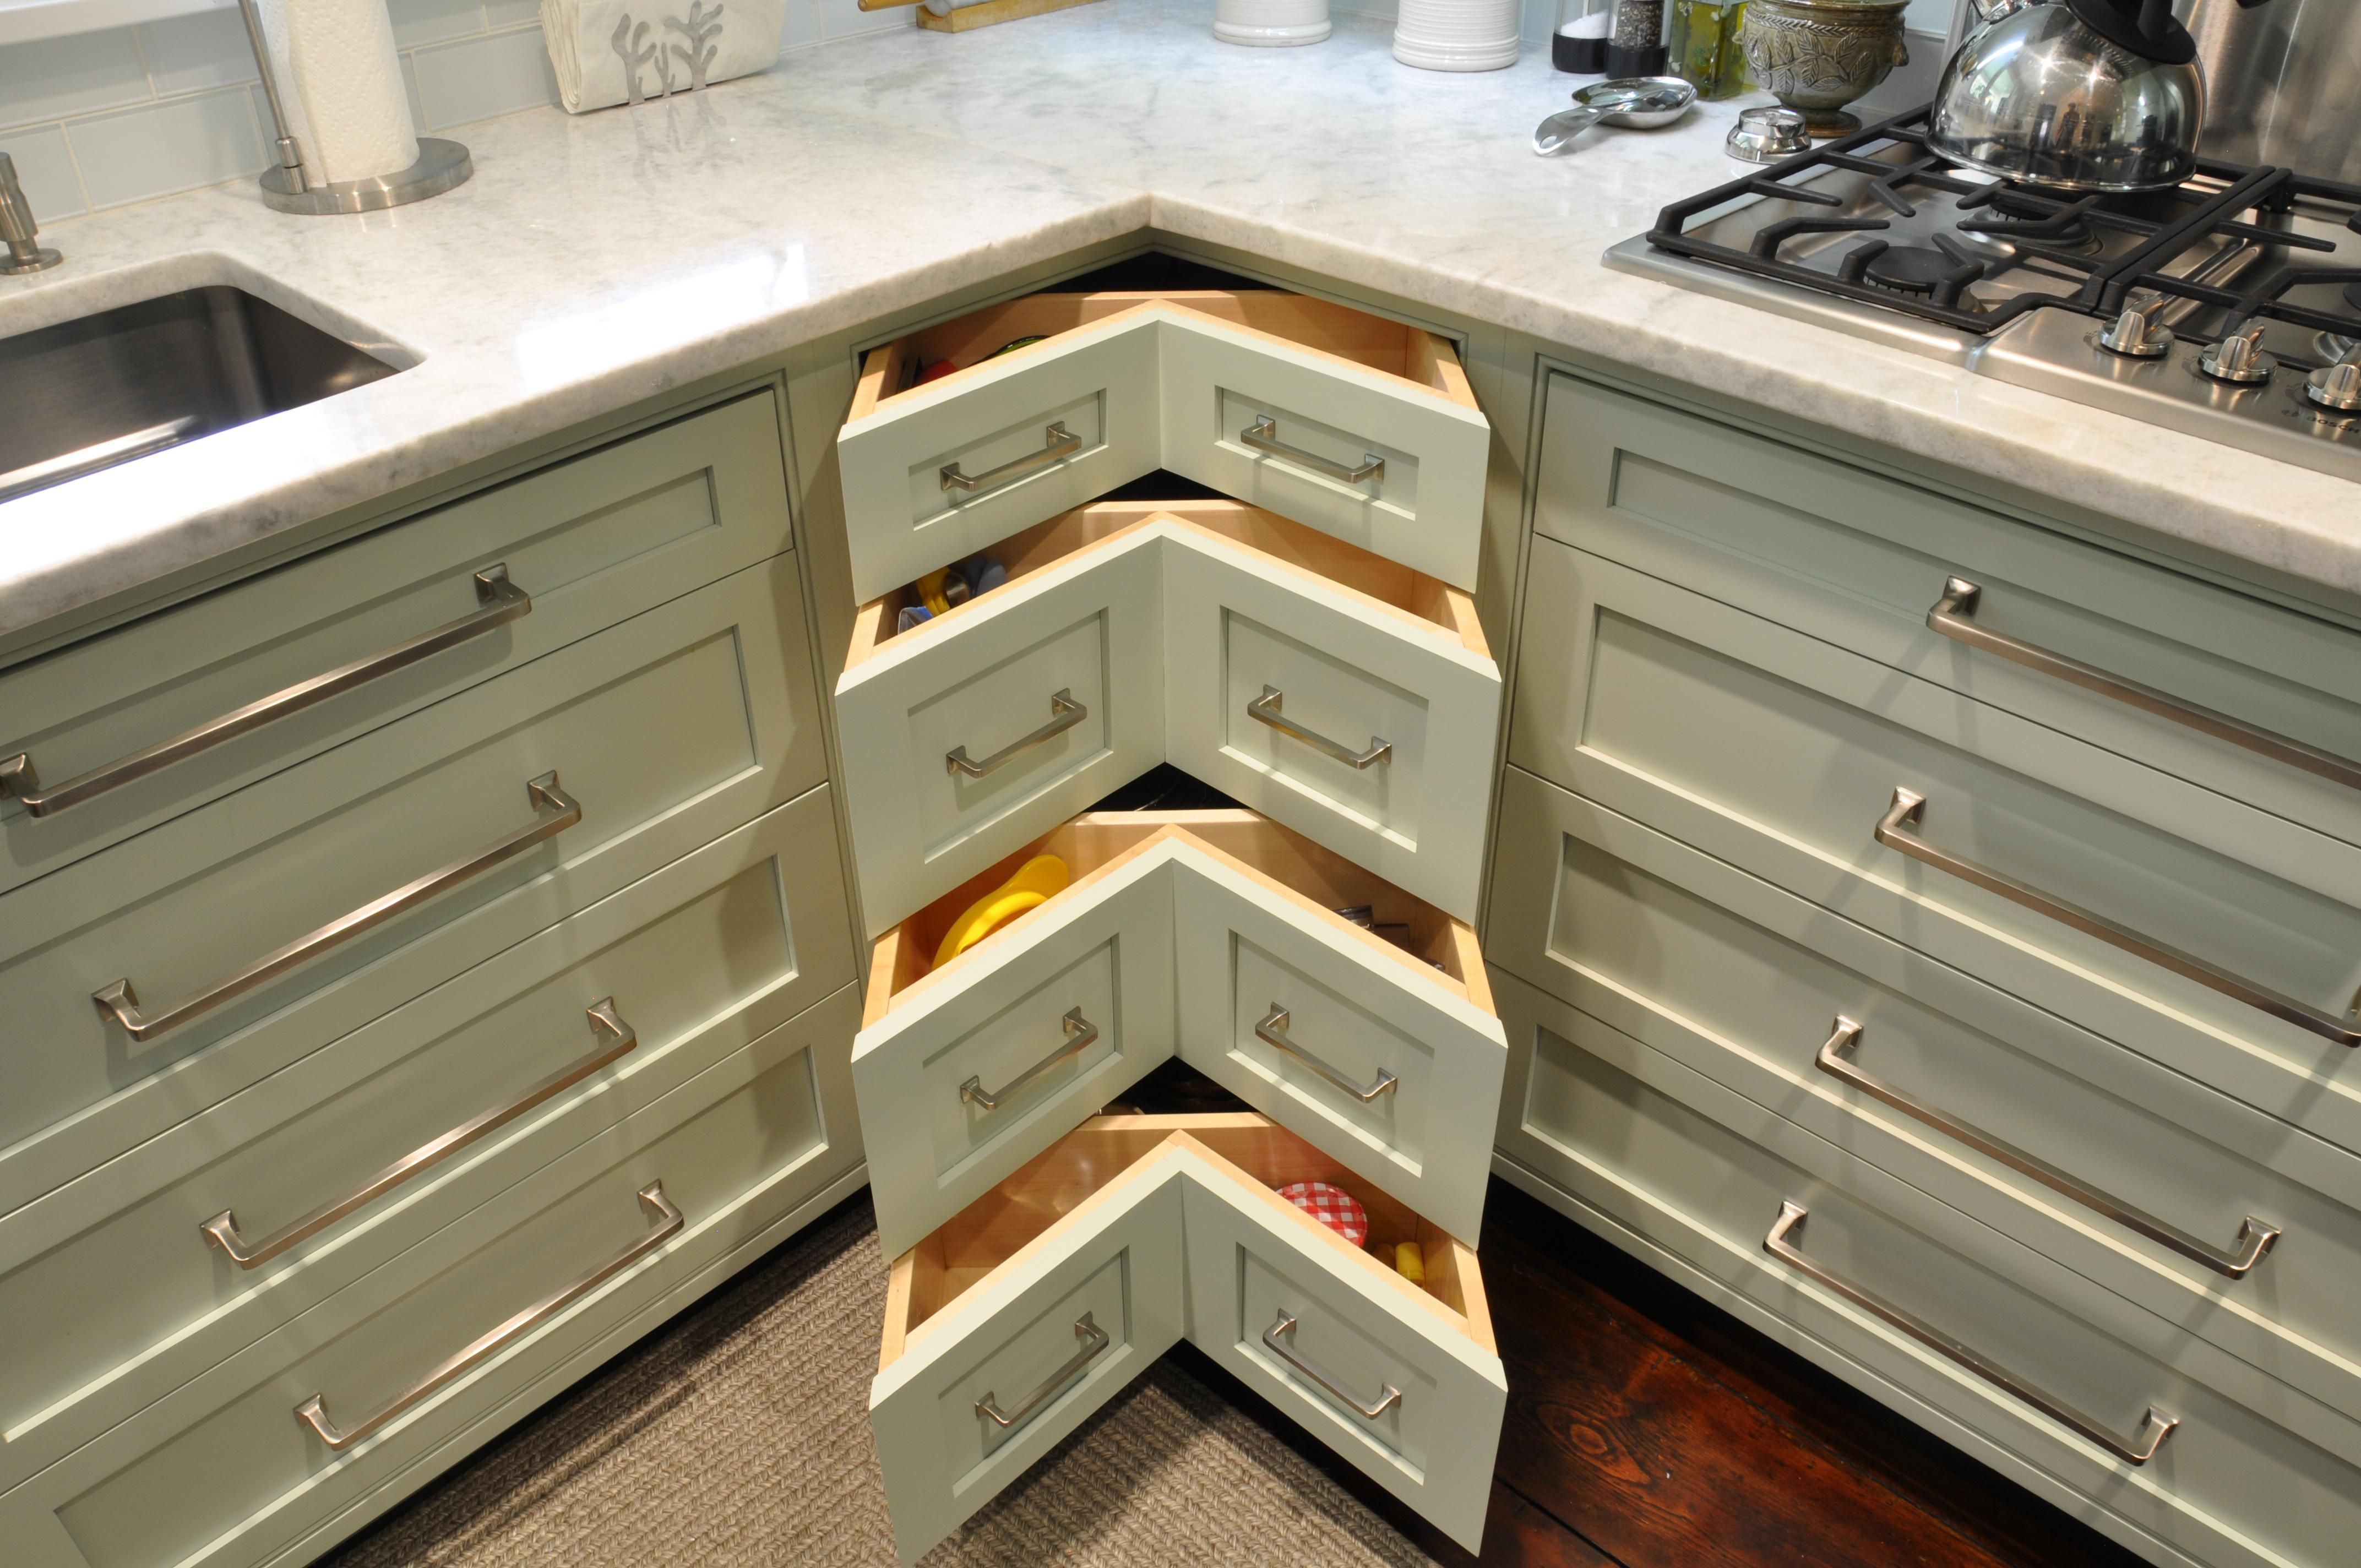 Amazing Corner Kitchen Cabinet for Lovely Kitchen Design     Home     Amazing Corner Kitchen Cabinet for Lovely Kitchen Design     Home